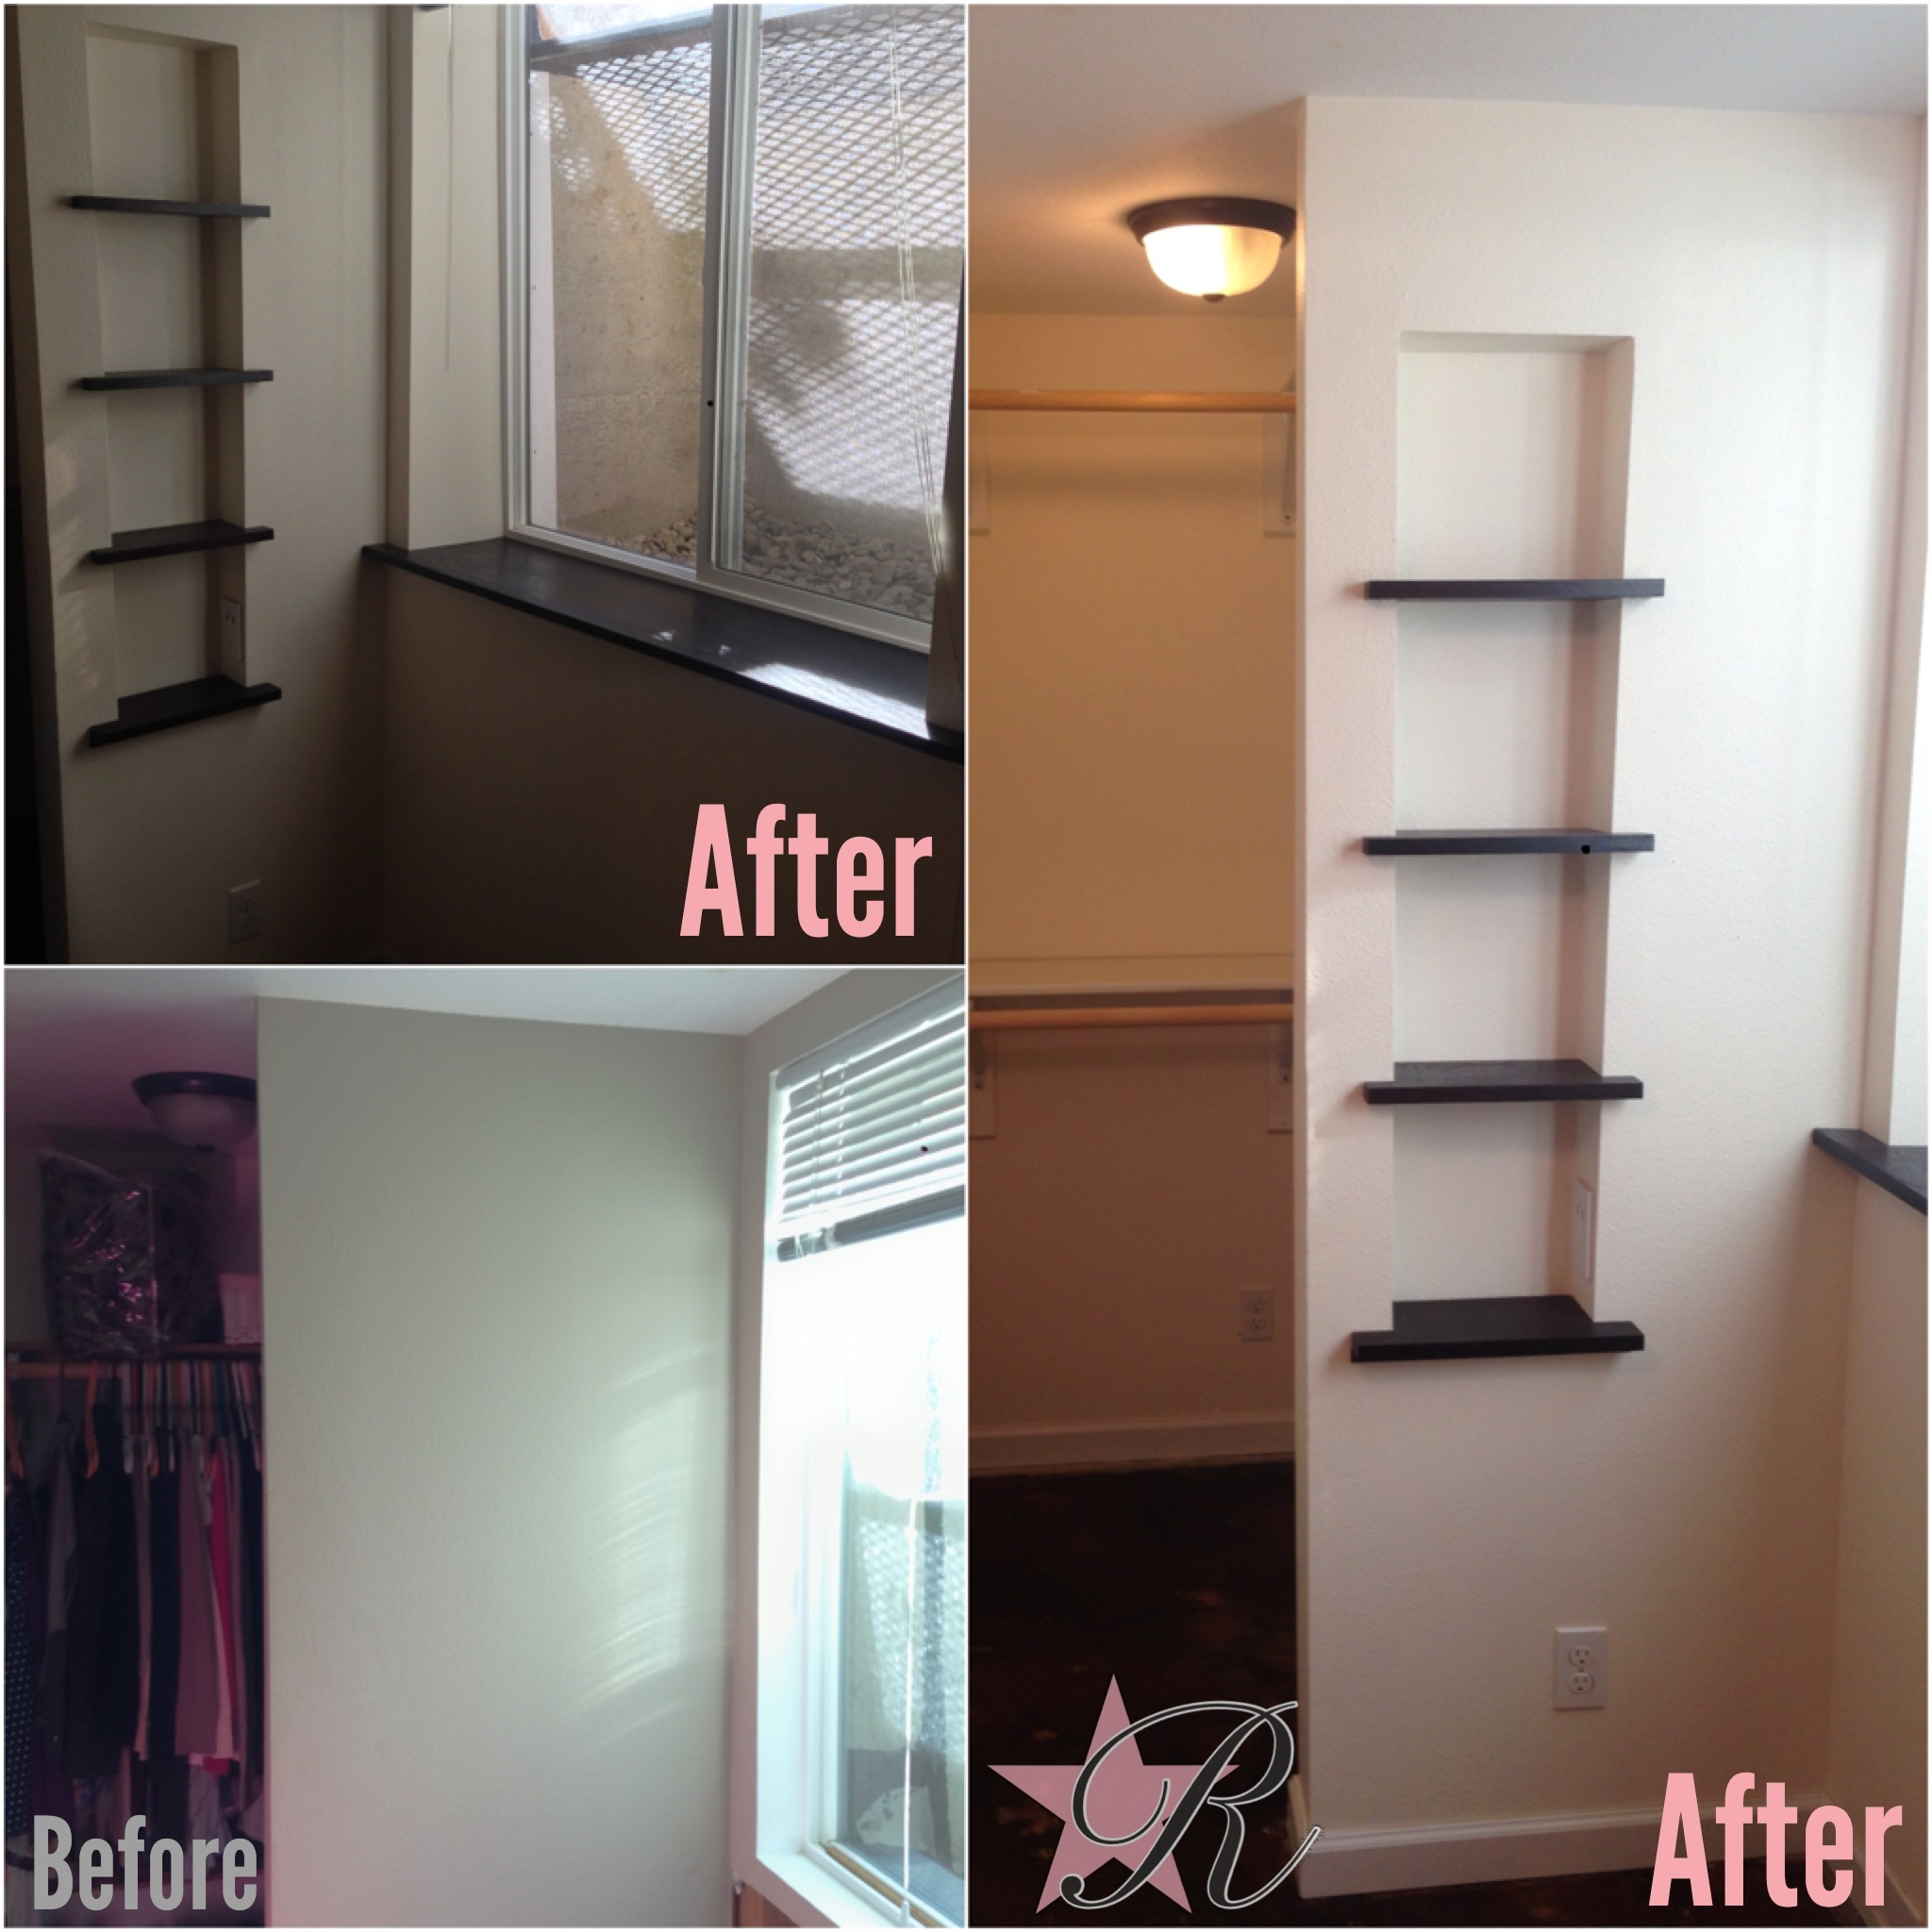 After the waterproofing contractors took care of the leak, Rockstar Remodel rebuilt this basement bedroom with a new closet design, window sill and built-in shelves.